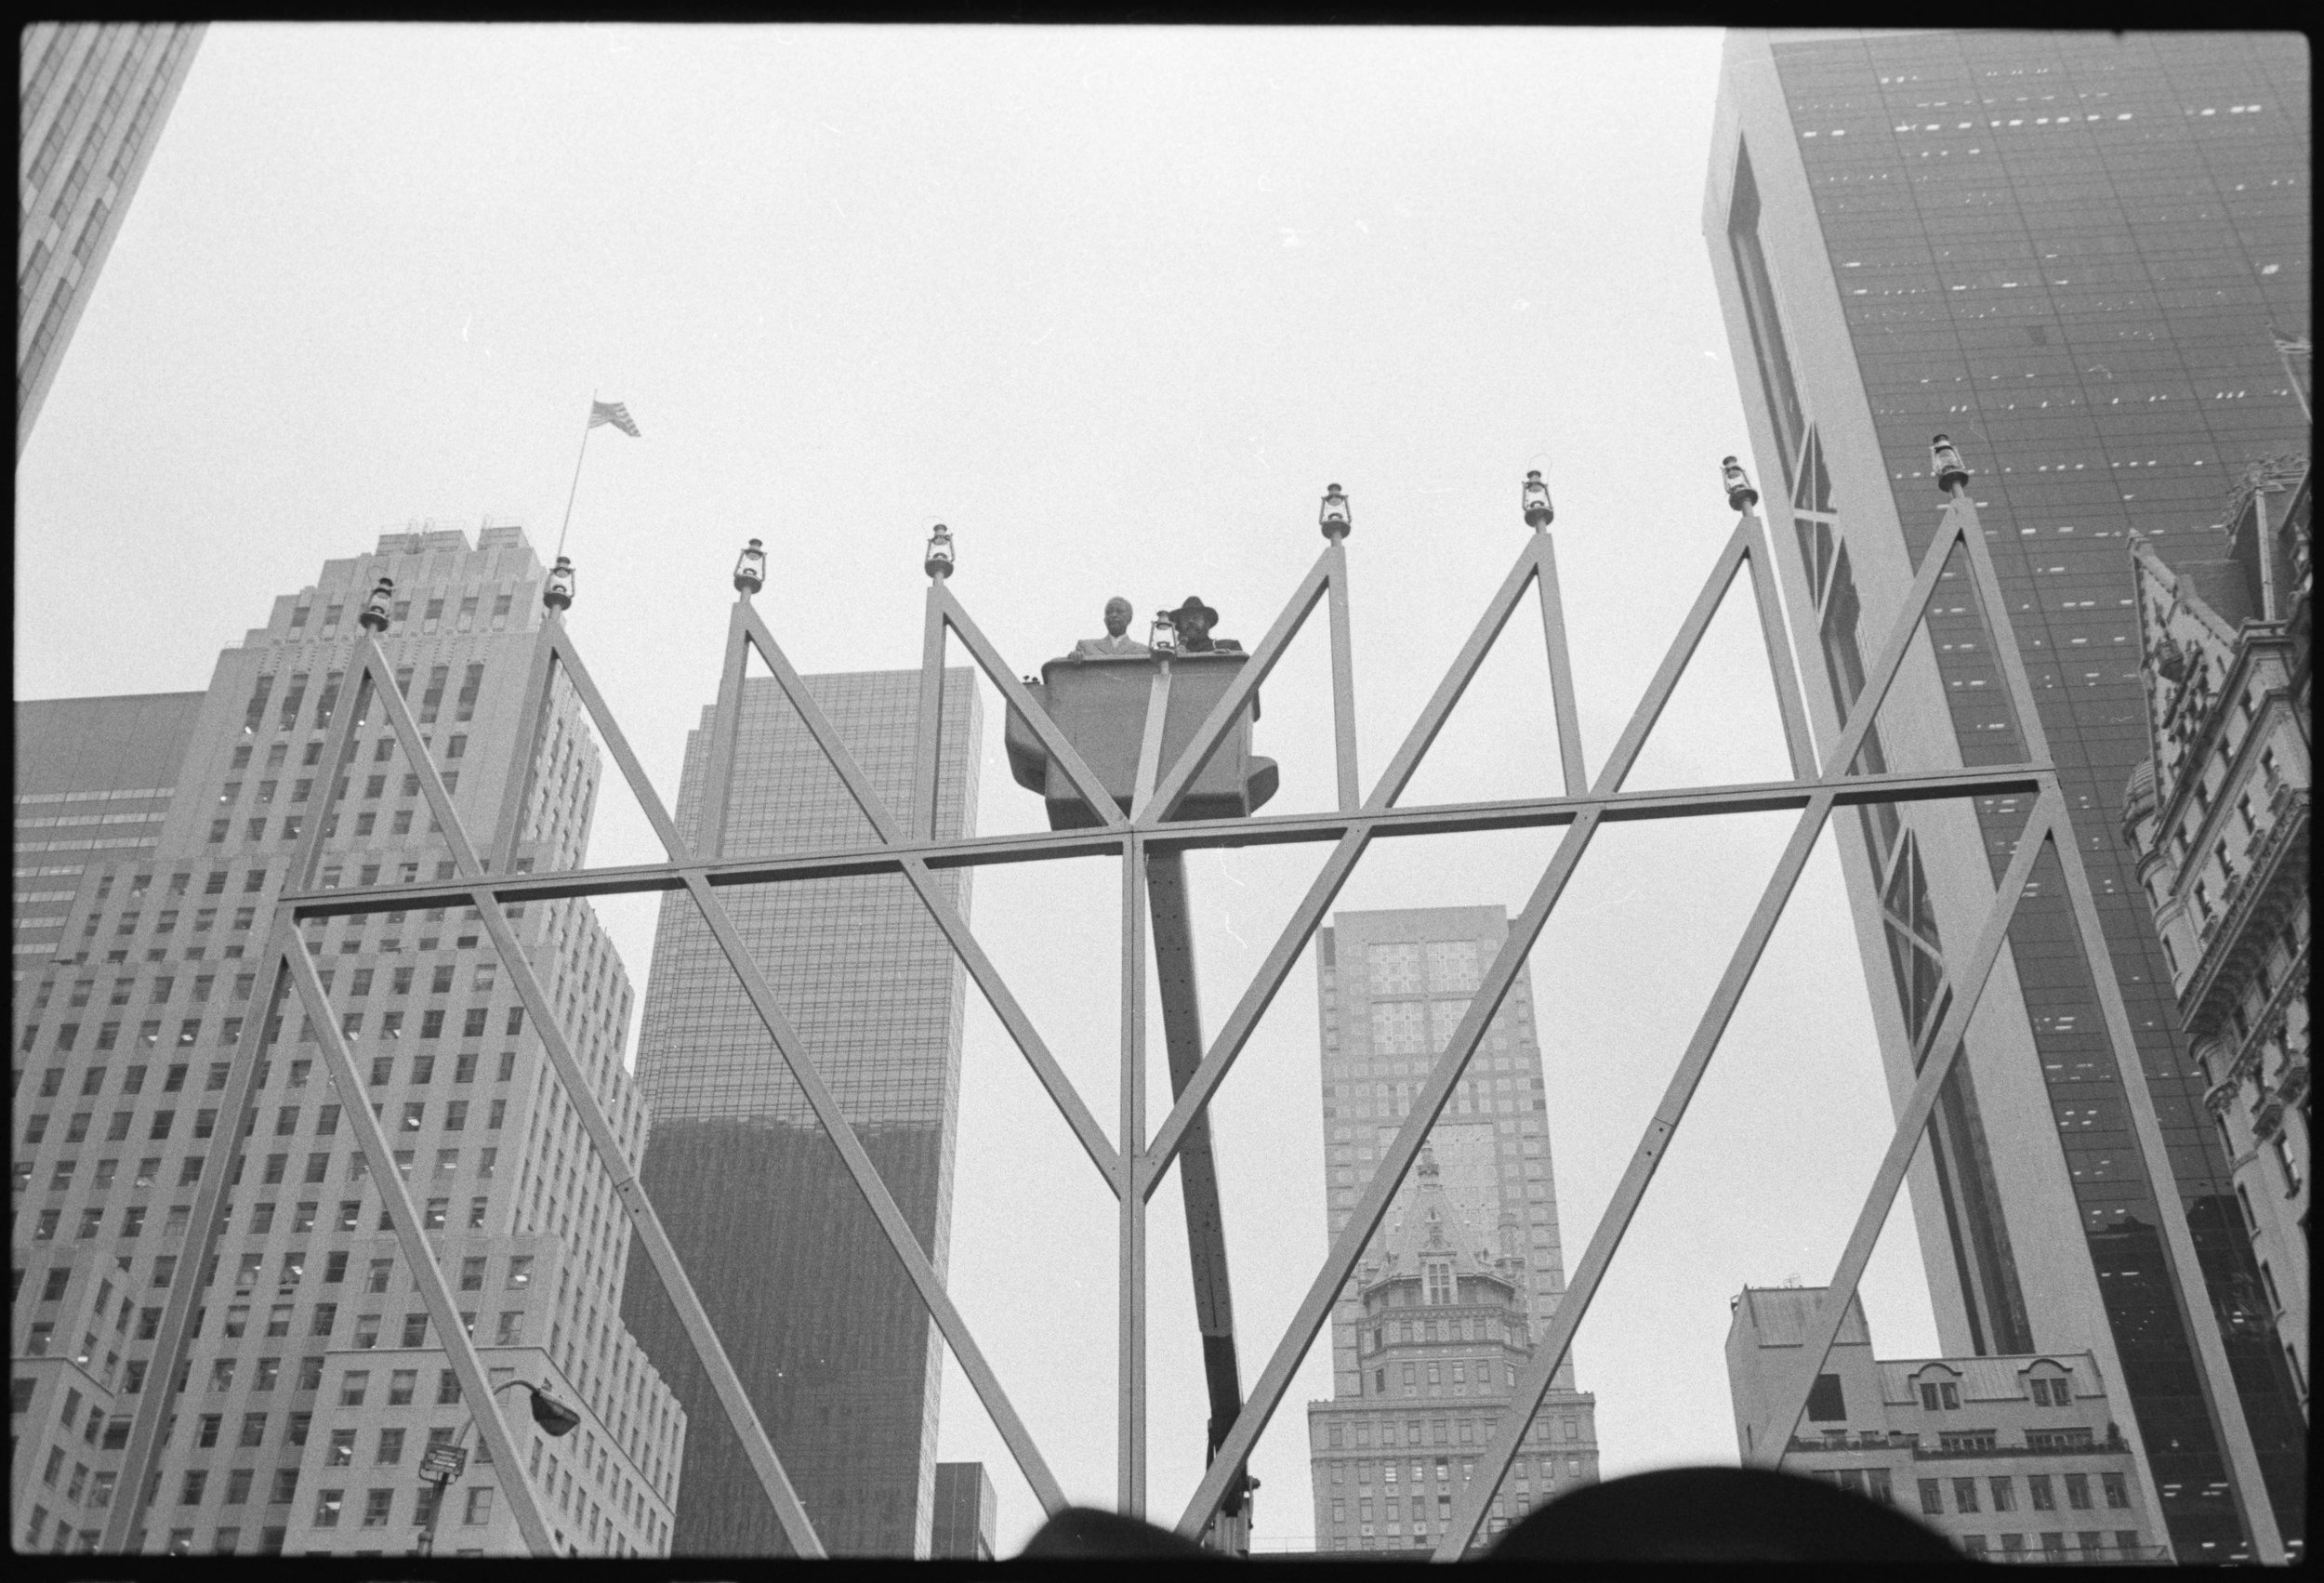 Mayor David Dinkins and Rabbi Shmewl Butman are lifted in a Con Edison cherry-picker to light the world's largest Menorah in Grand Army Plaza at 59th Street Manhattan. Mayor Dinkins Collection, NYC Municipal Archives.